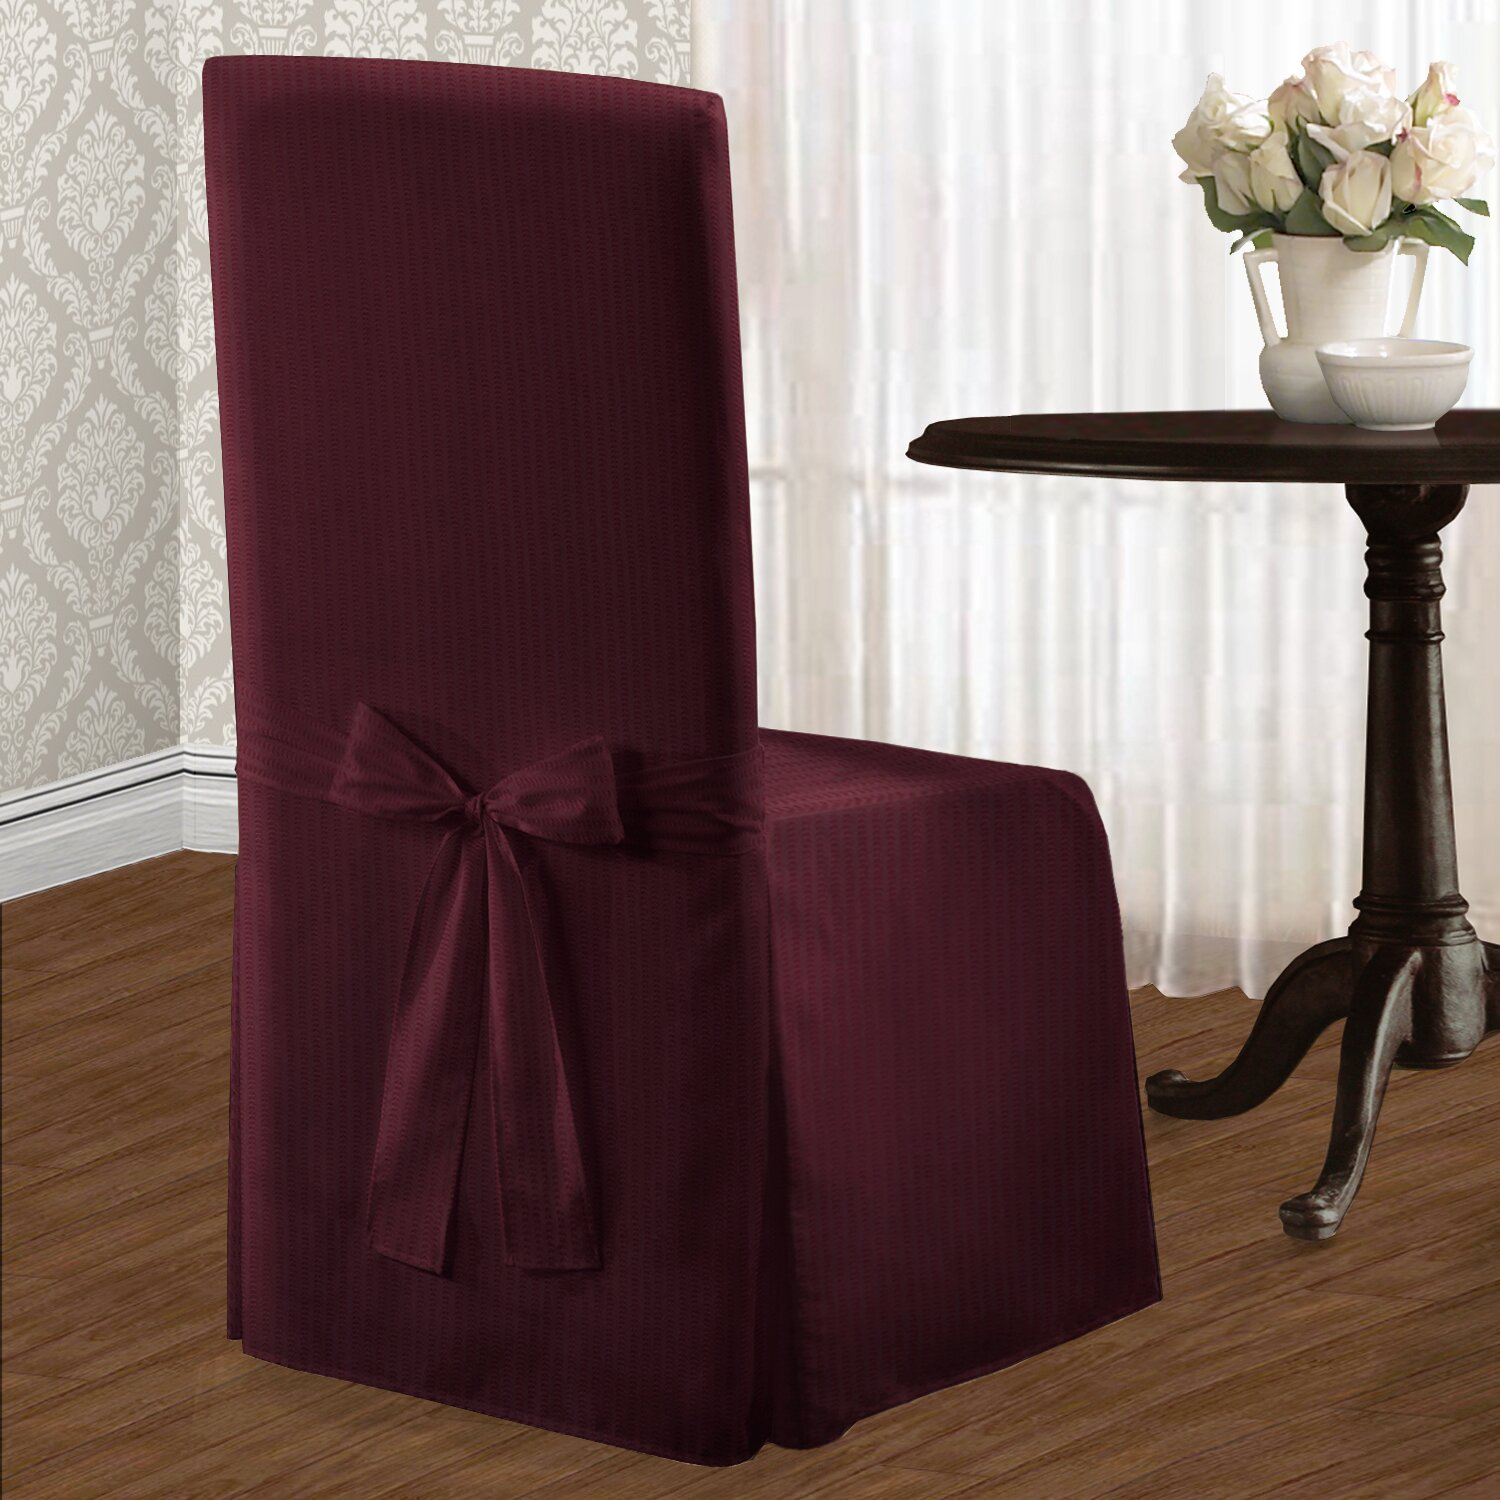 Charlton Home Parson Chair Slipcover & Reviews